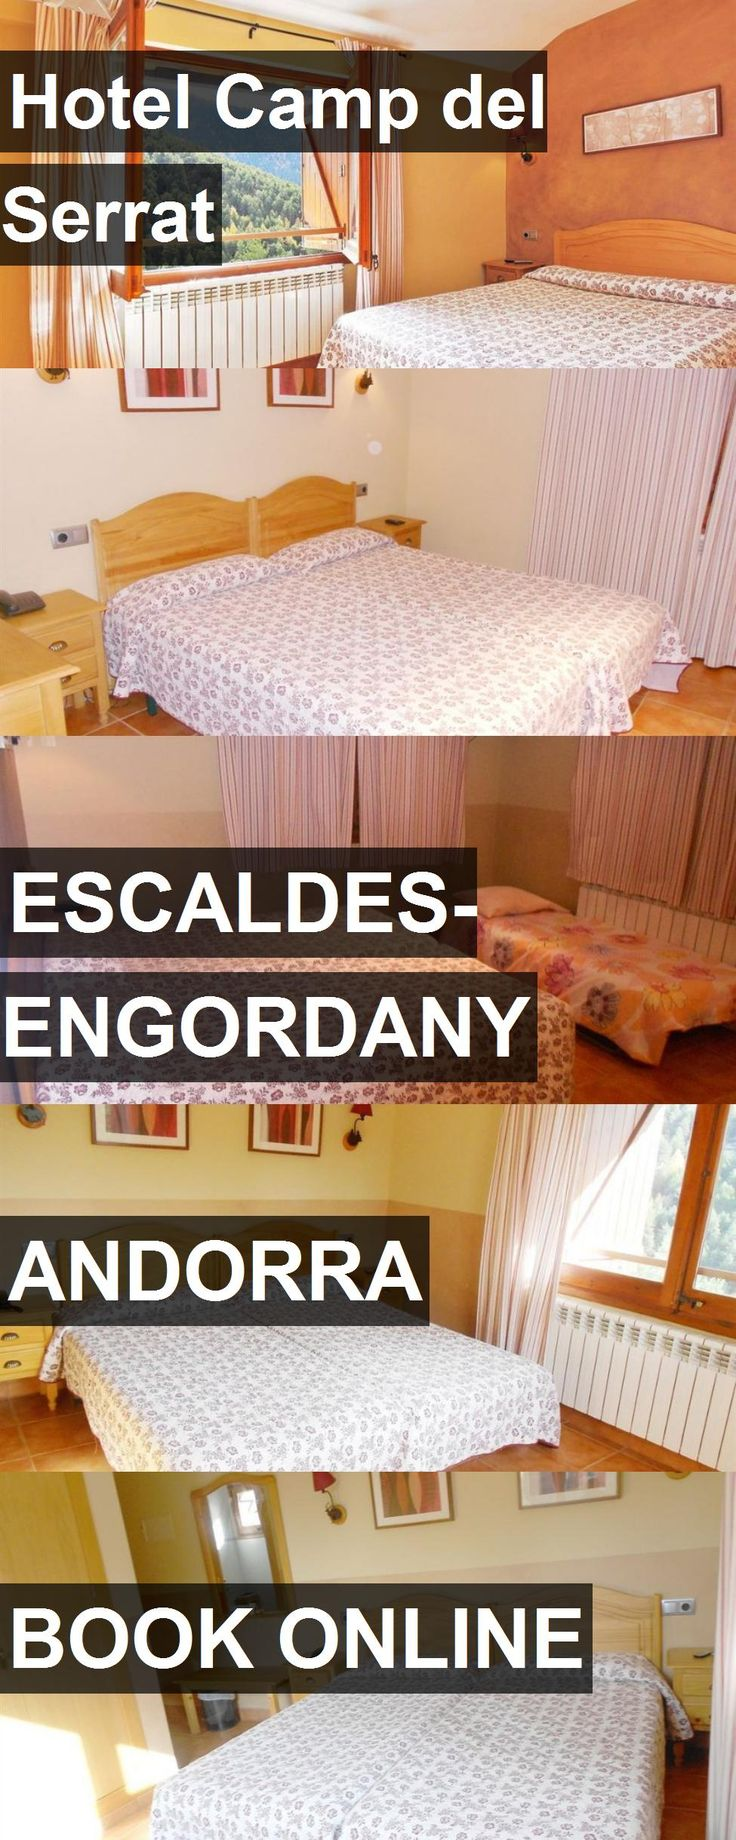 Hotel Hotel Camp del Serrat in Escaldes-Engordany, Andorra. For more information, photos, reviews and best prices please follow the link. #Andorra #Escaldes-Engordany #HotelCampdelSerrat #hotel #travel #vacation